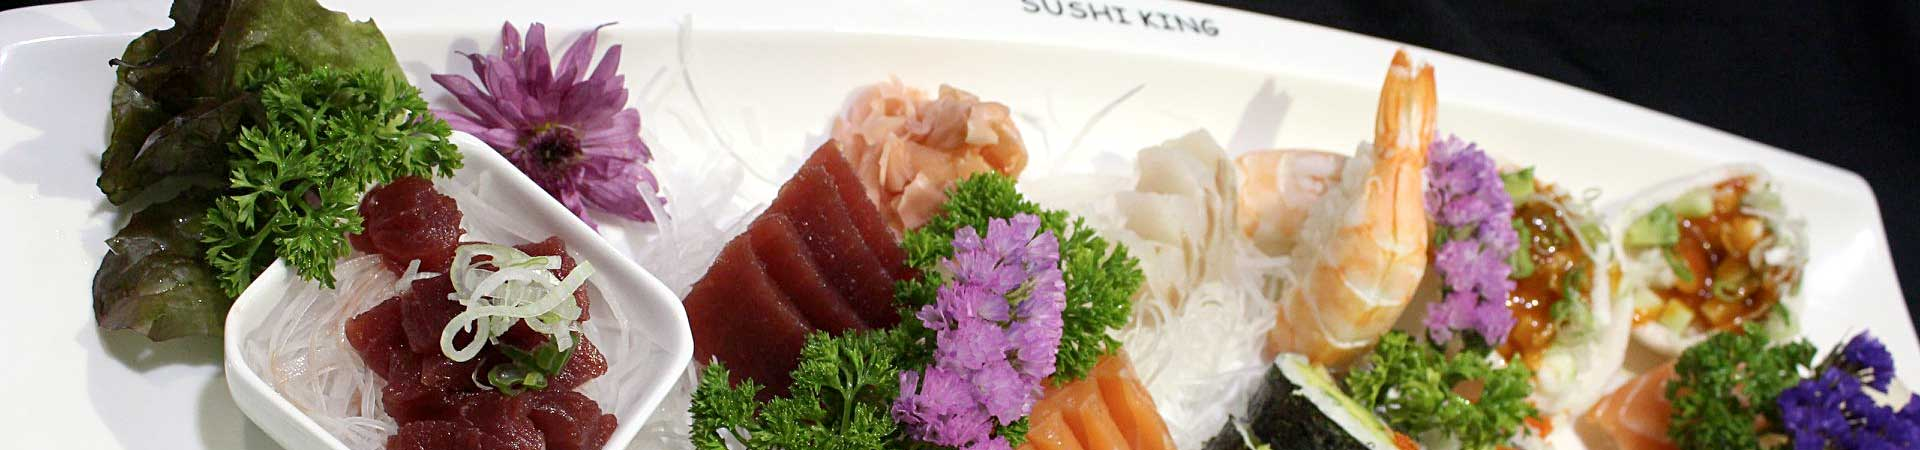 http://www.goodmorningtenerife.com/wp-content/uploads/2018/04/02_slide_sushi-king-1920×450-good-morning-tenerife.jpg